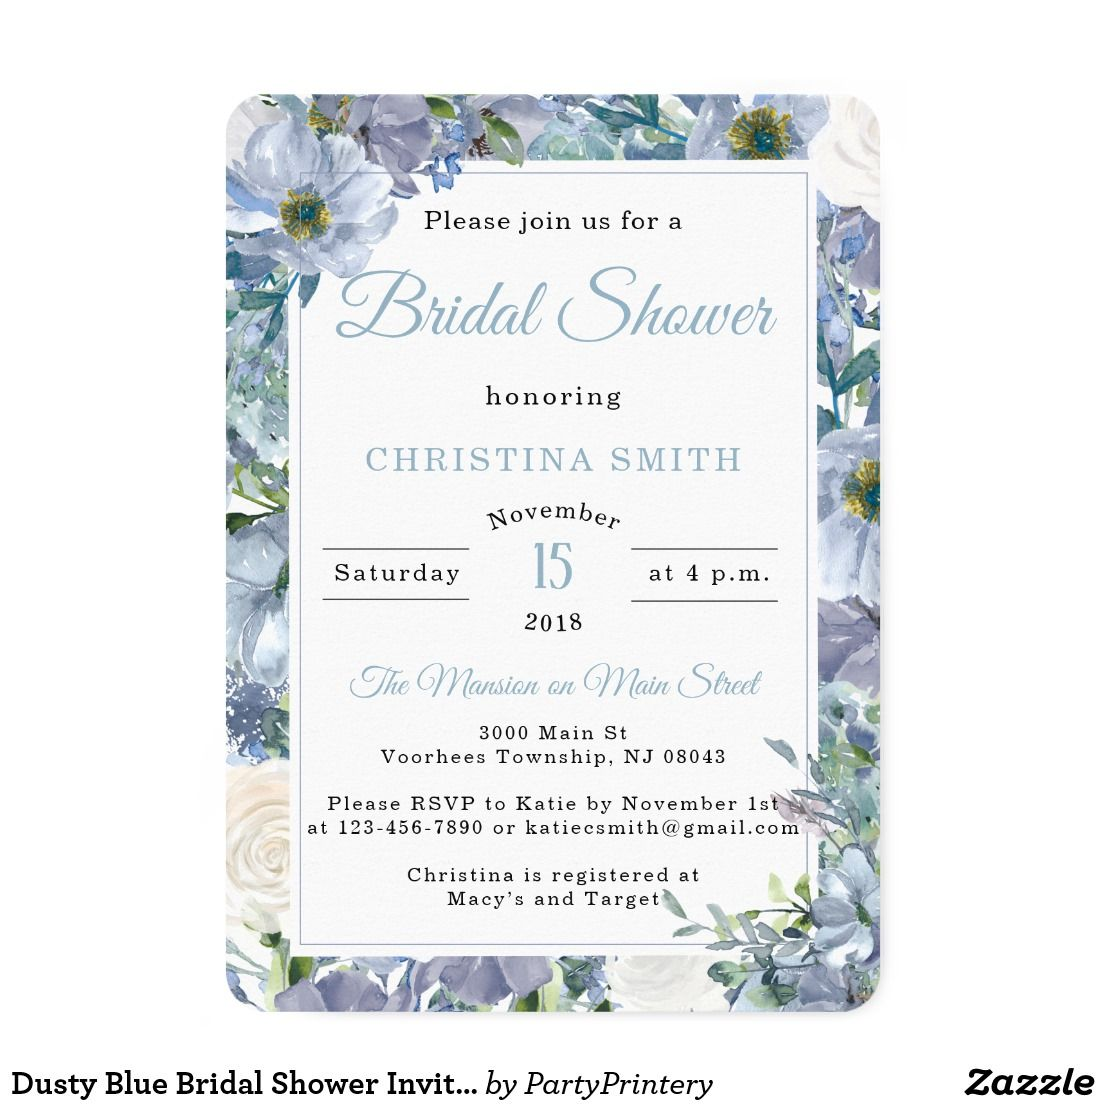 ba81a25f1d25 Dusty Blue Bridal Shower Invitations in 2018